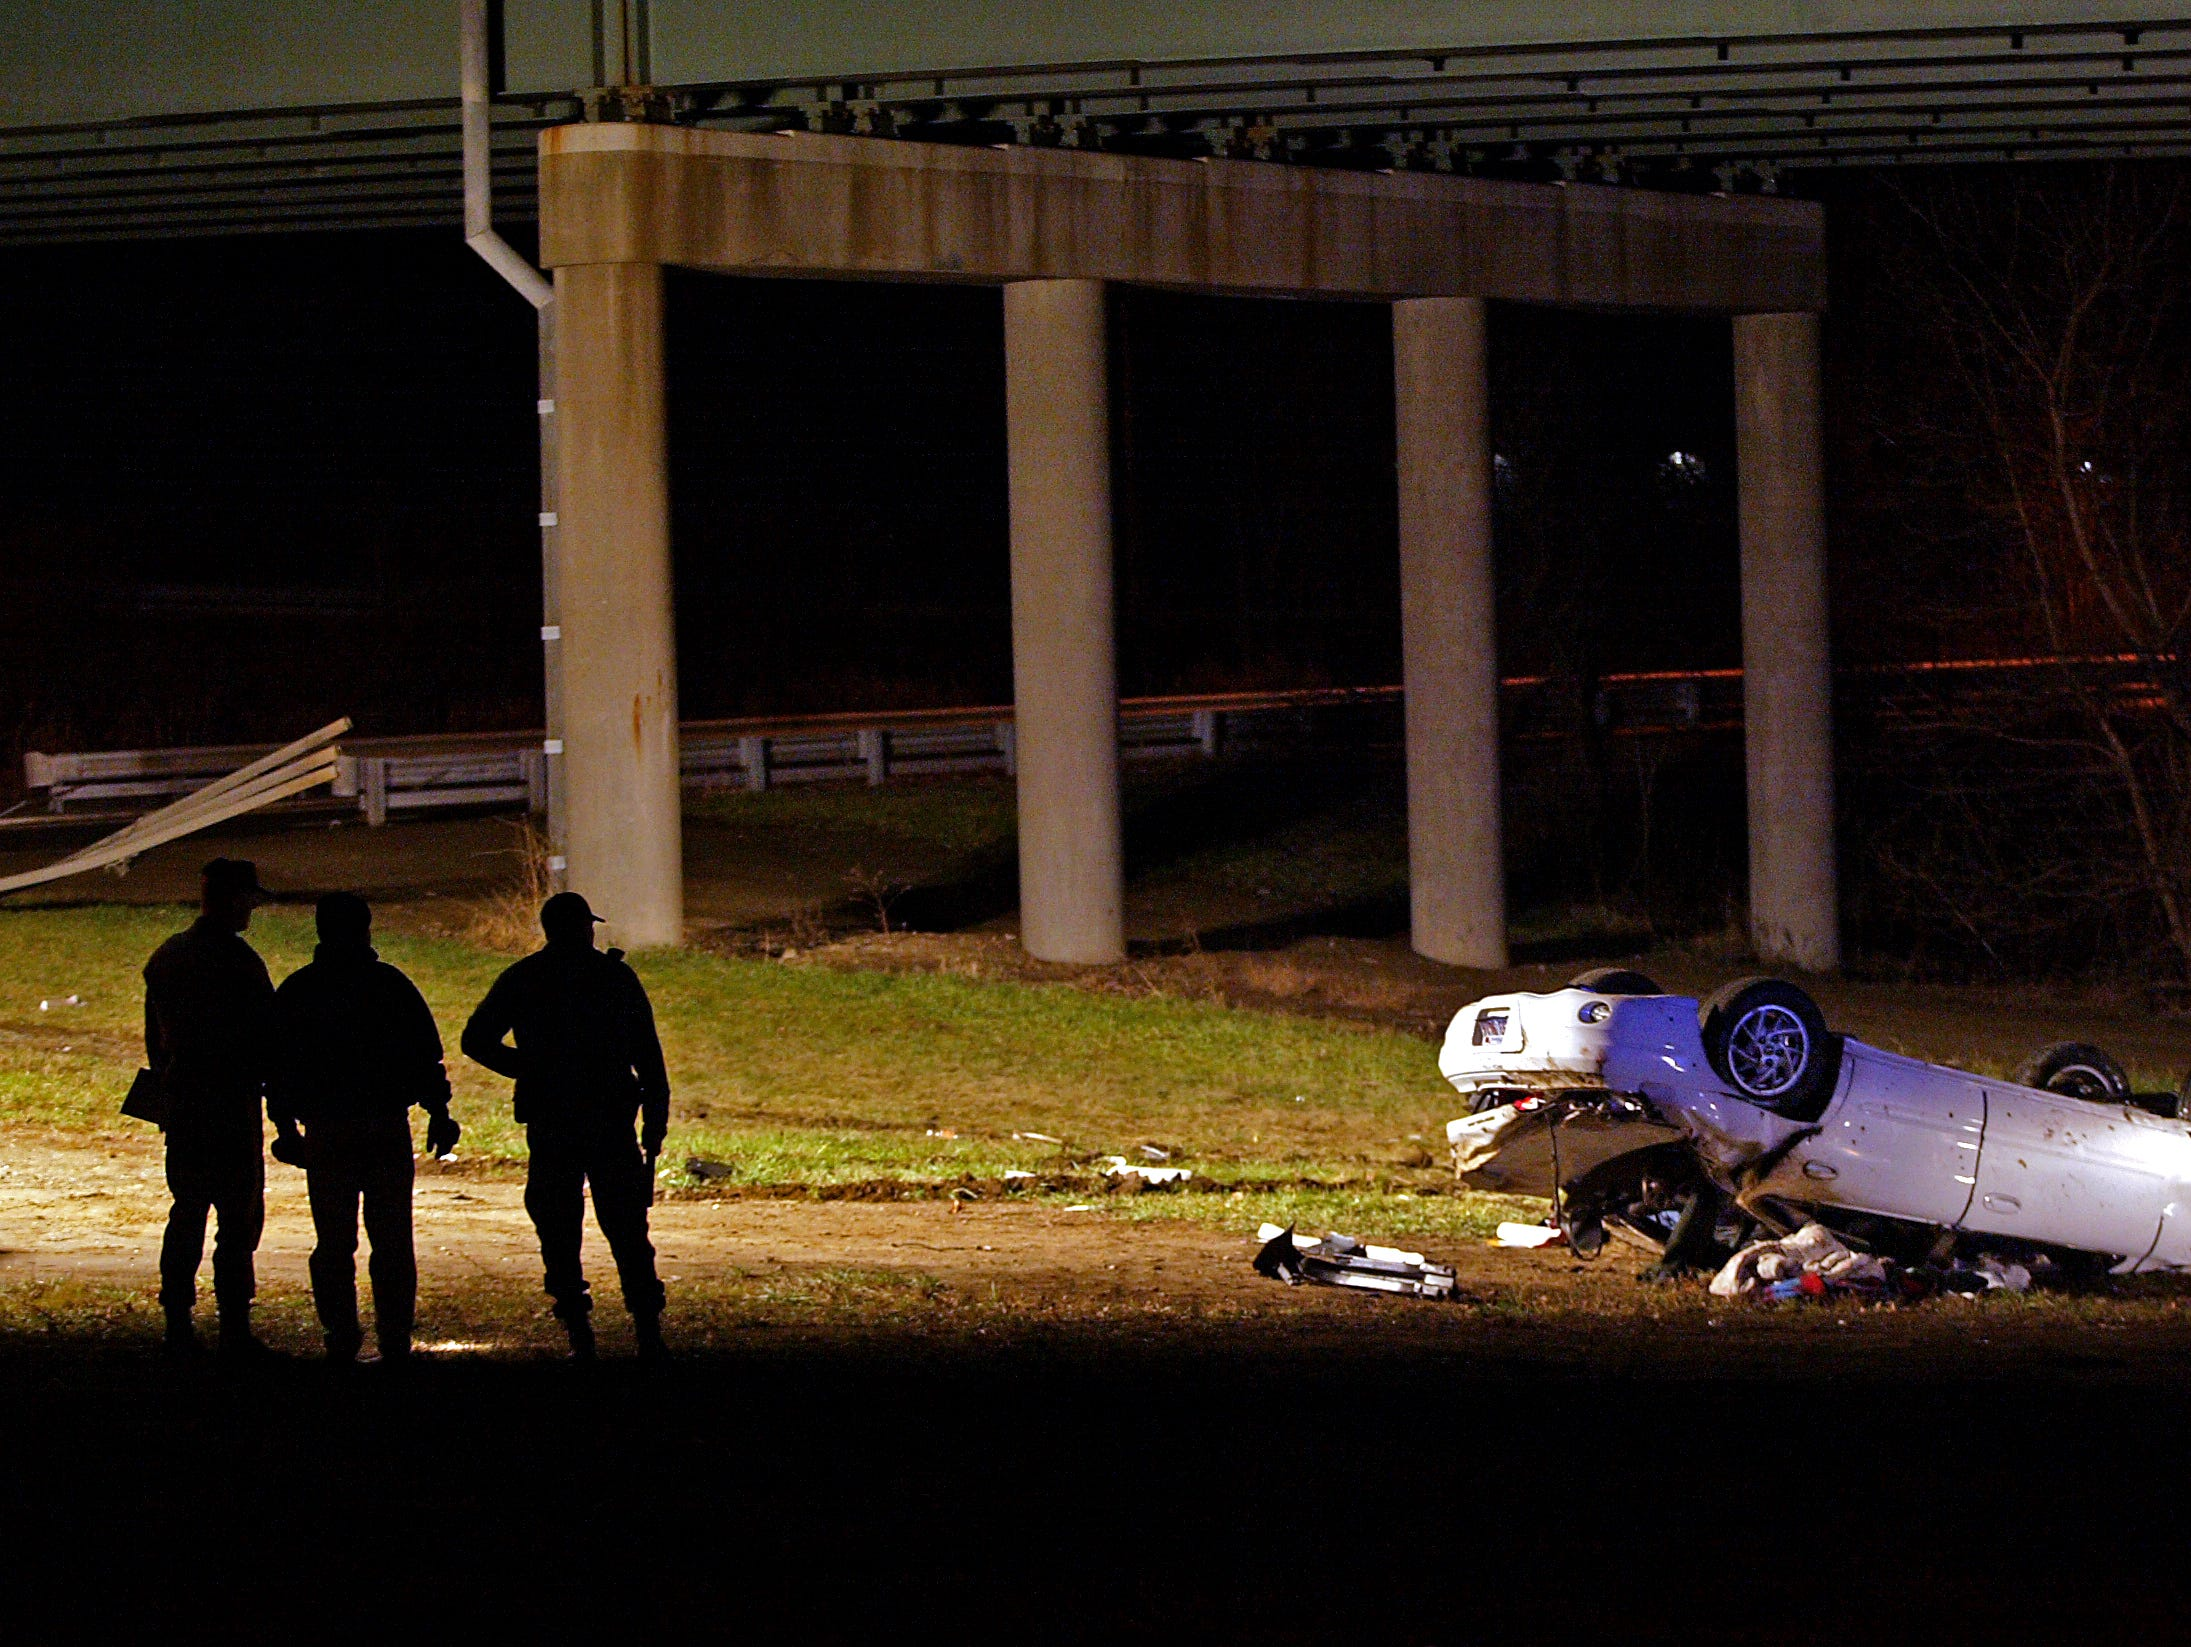 New Jersey State Police investigate the scene of an accident on Christmas night where a Chicago man crashed his Pontiac Grand Am through two guardrails on a Route 80 overpass. The car then plunged 40 feet landing upside-down on Route 46.